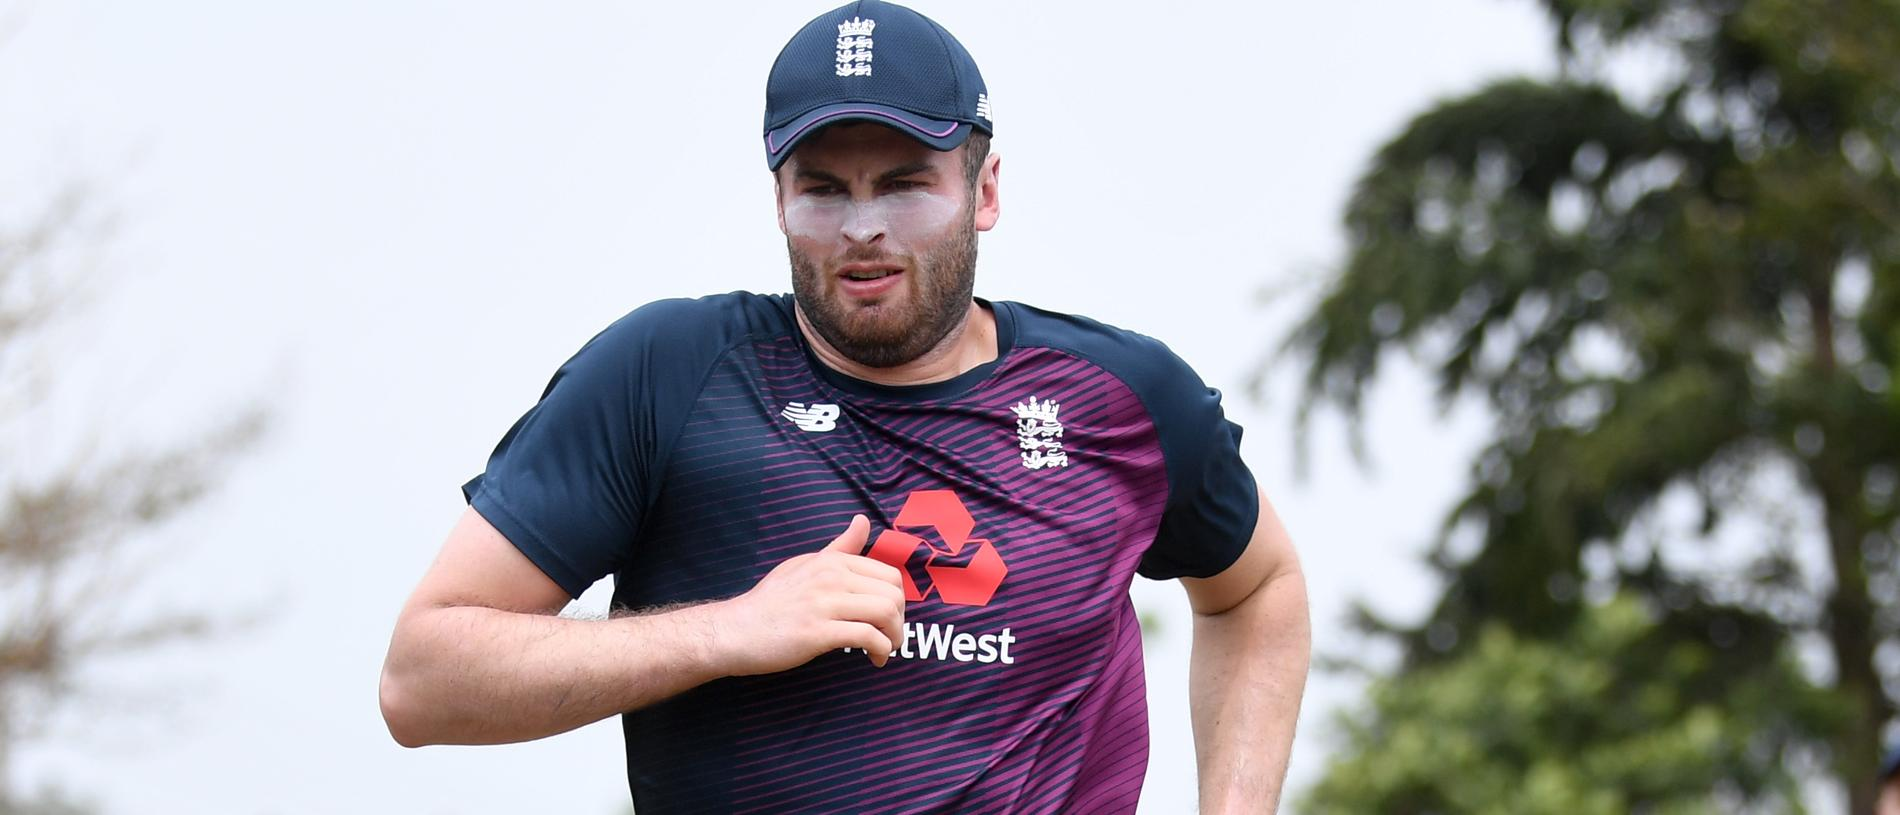 KATUNAYAKE, SRI LANKA - MARCH 06: Dom Sibley of England warms up during a nets session at Chilaw Marians Cricket Club Ground on March 06, 2020 in Katunayake, Sri Lanka. (Photo by Gareth Copley/Getty Images)